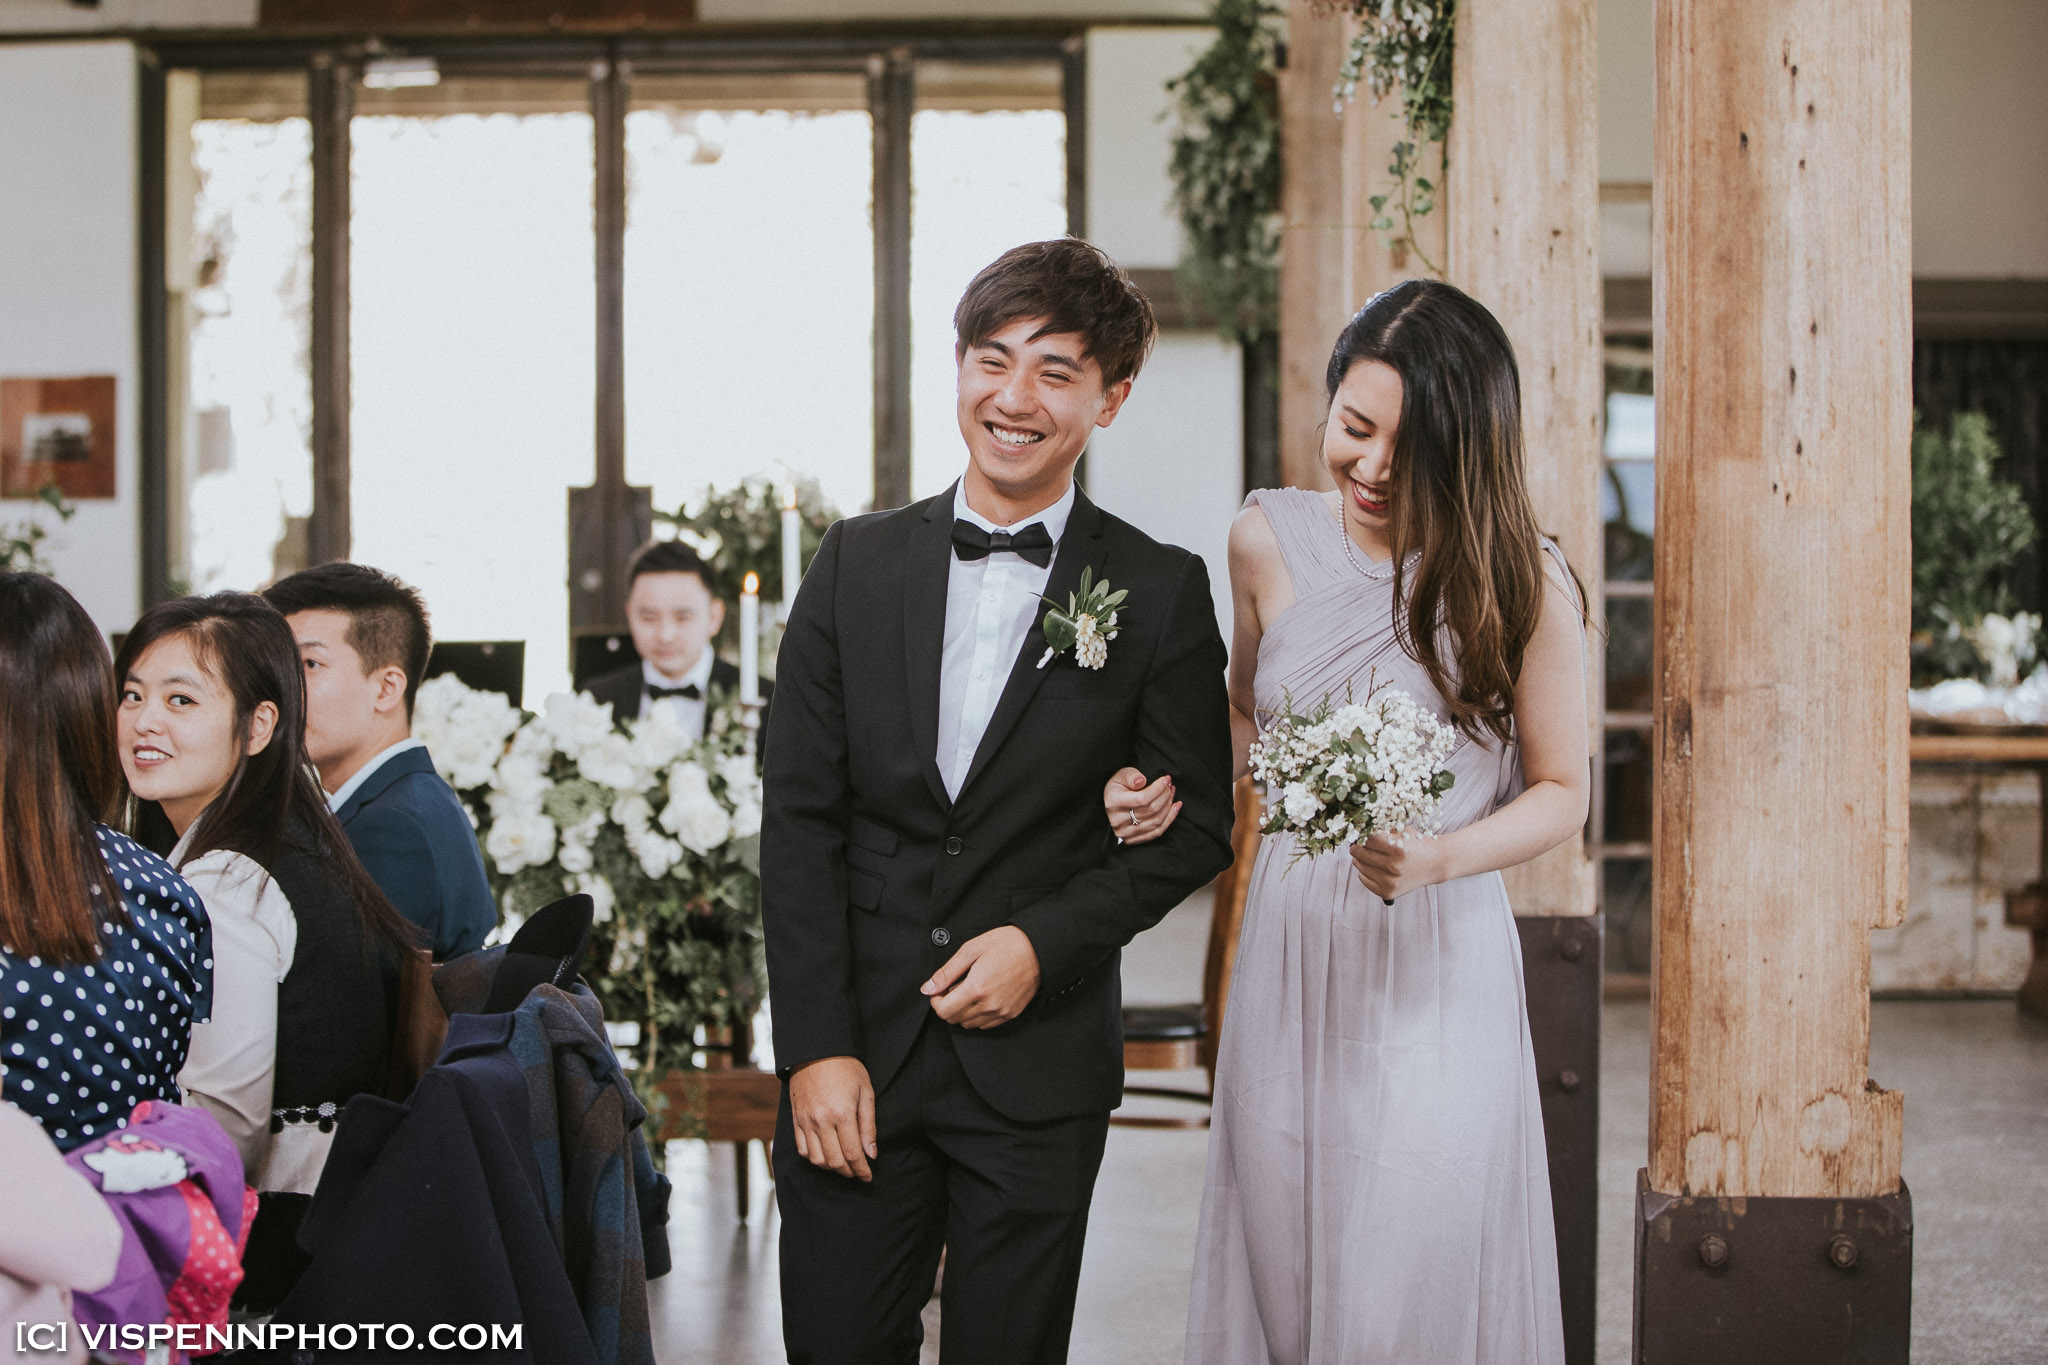 WEDDING DAY Photography Melbourne LeanneWesley 07967 2P 1DX ZHPENN